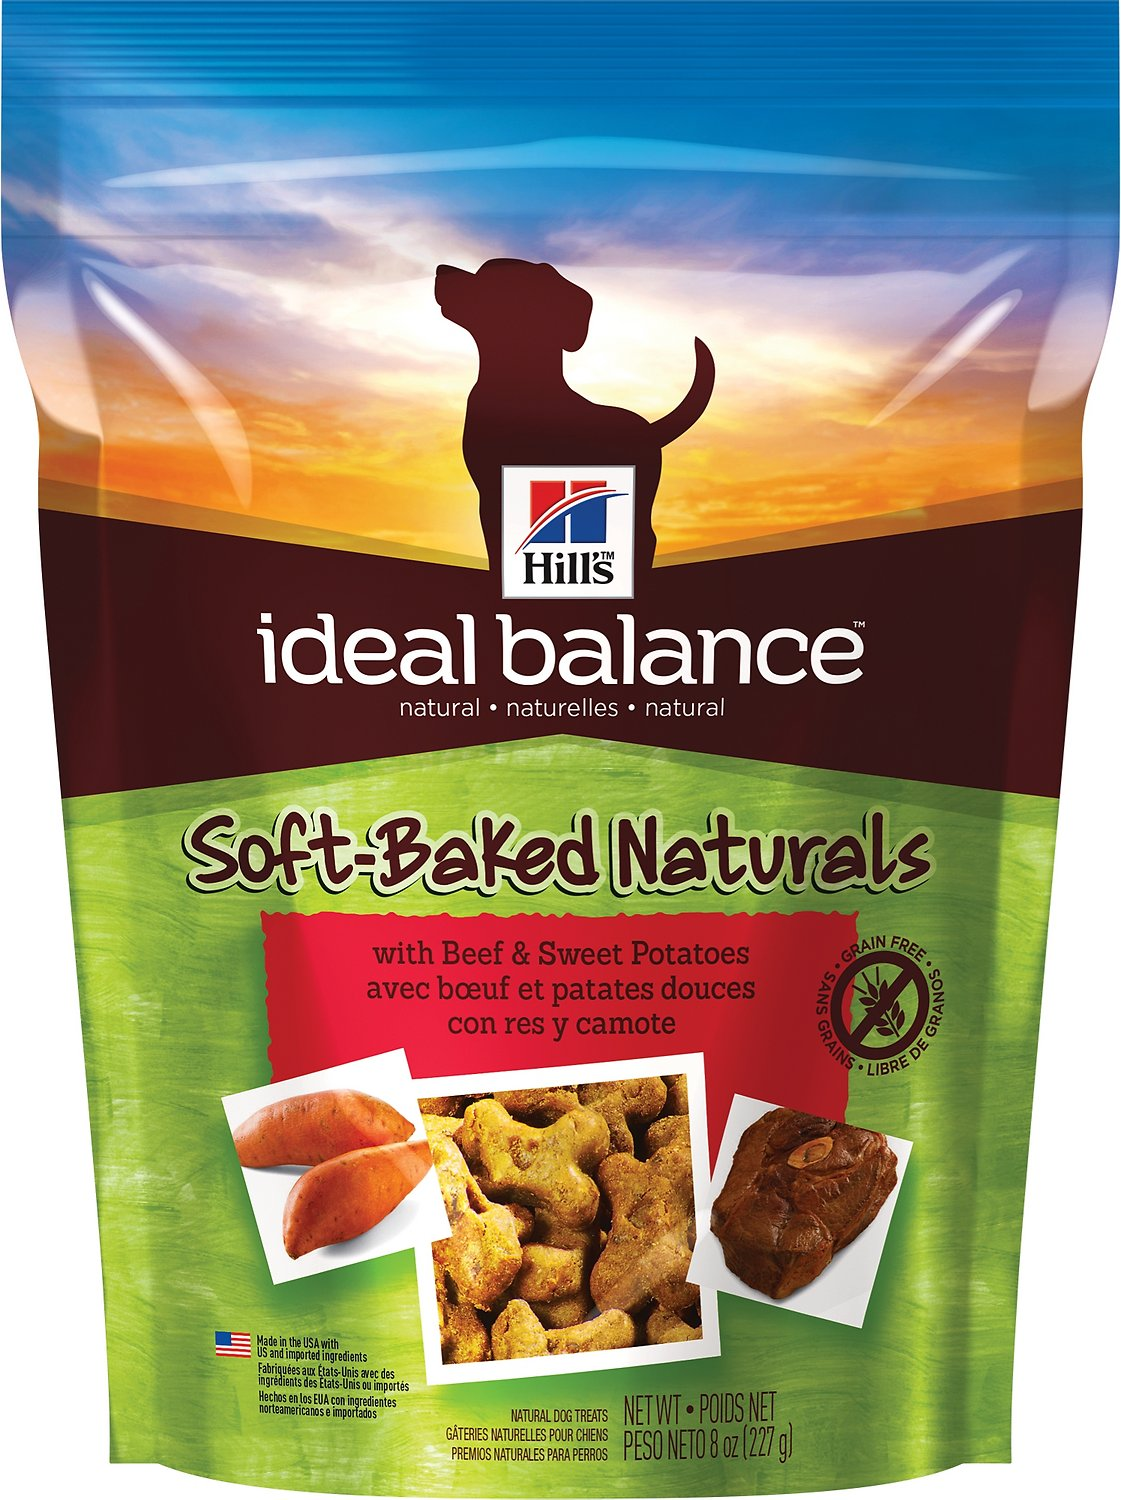 Hill's Ideal Balance Soft-Baked Naturals with Beef & Sweet Potatoes Dog Treats, 8-oz bag